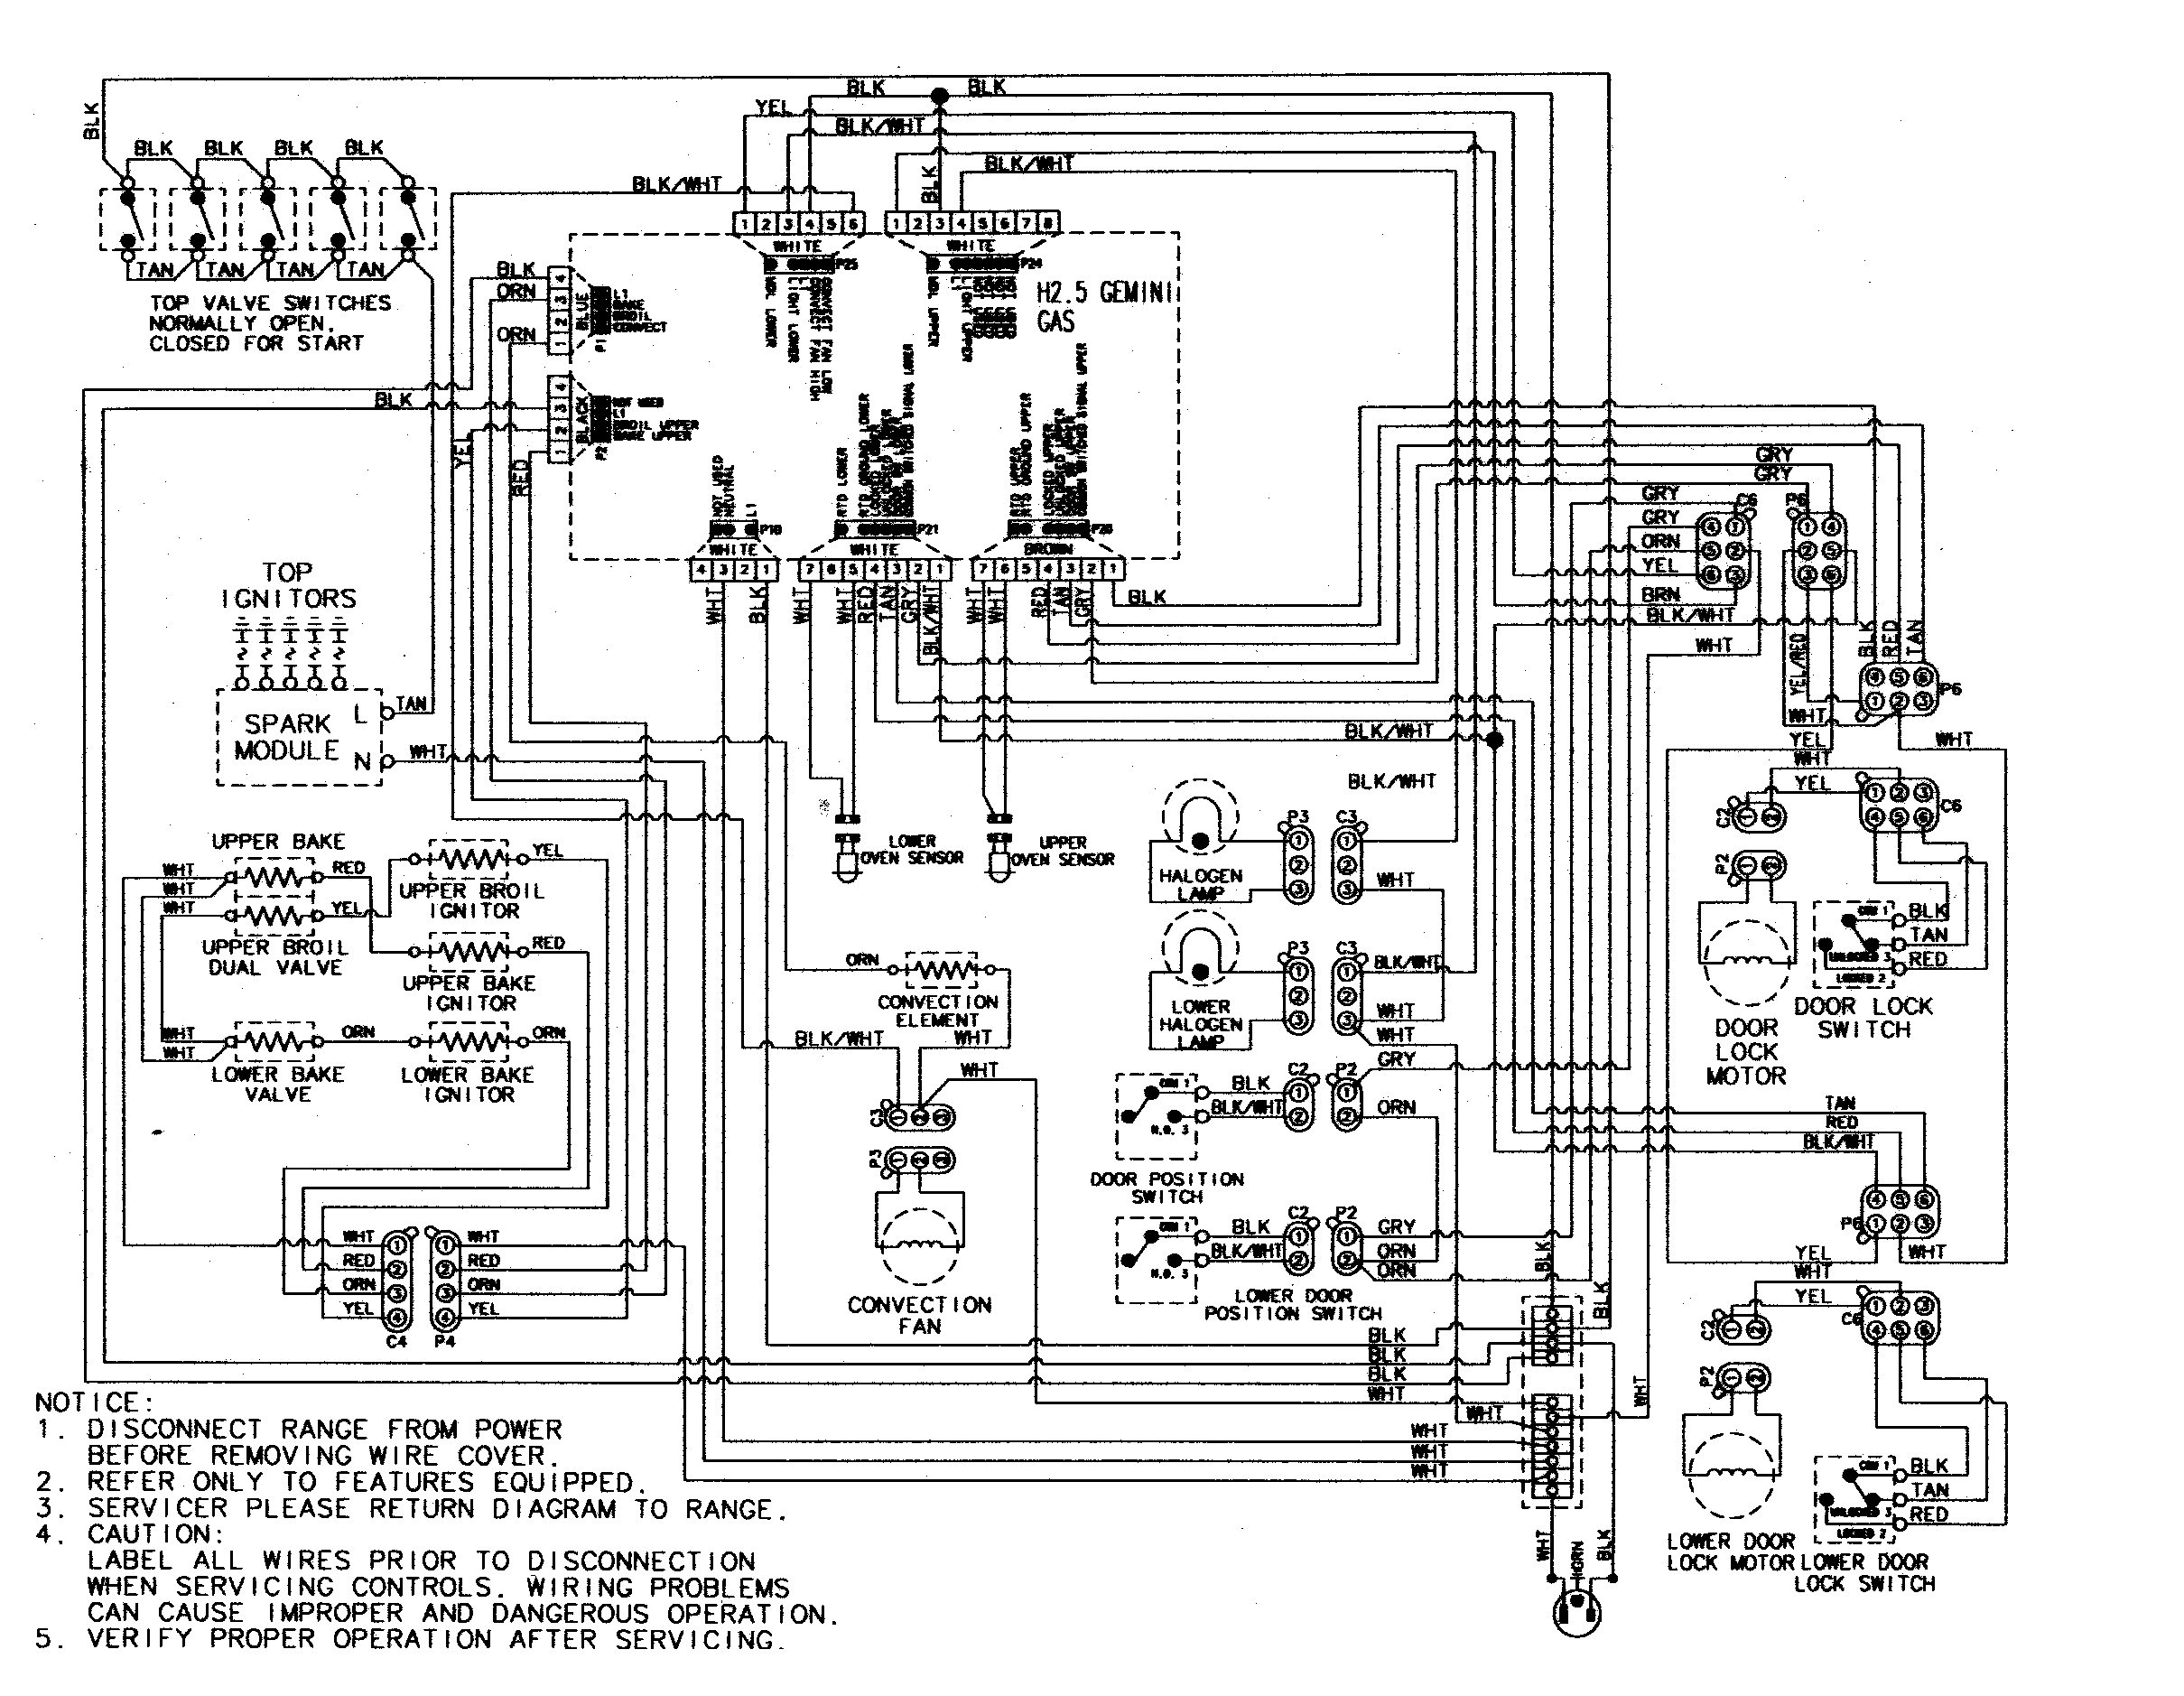 Wiring Diagram Fan Control Center Enthusiast Diagrams Honeywell Maytag Mgr6875adb Gemini 30 Quot Double Oven Freestanding Gas Range Timer Stove Clocks And Relay